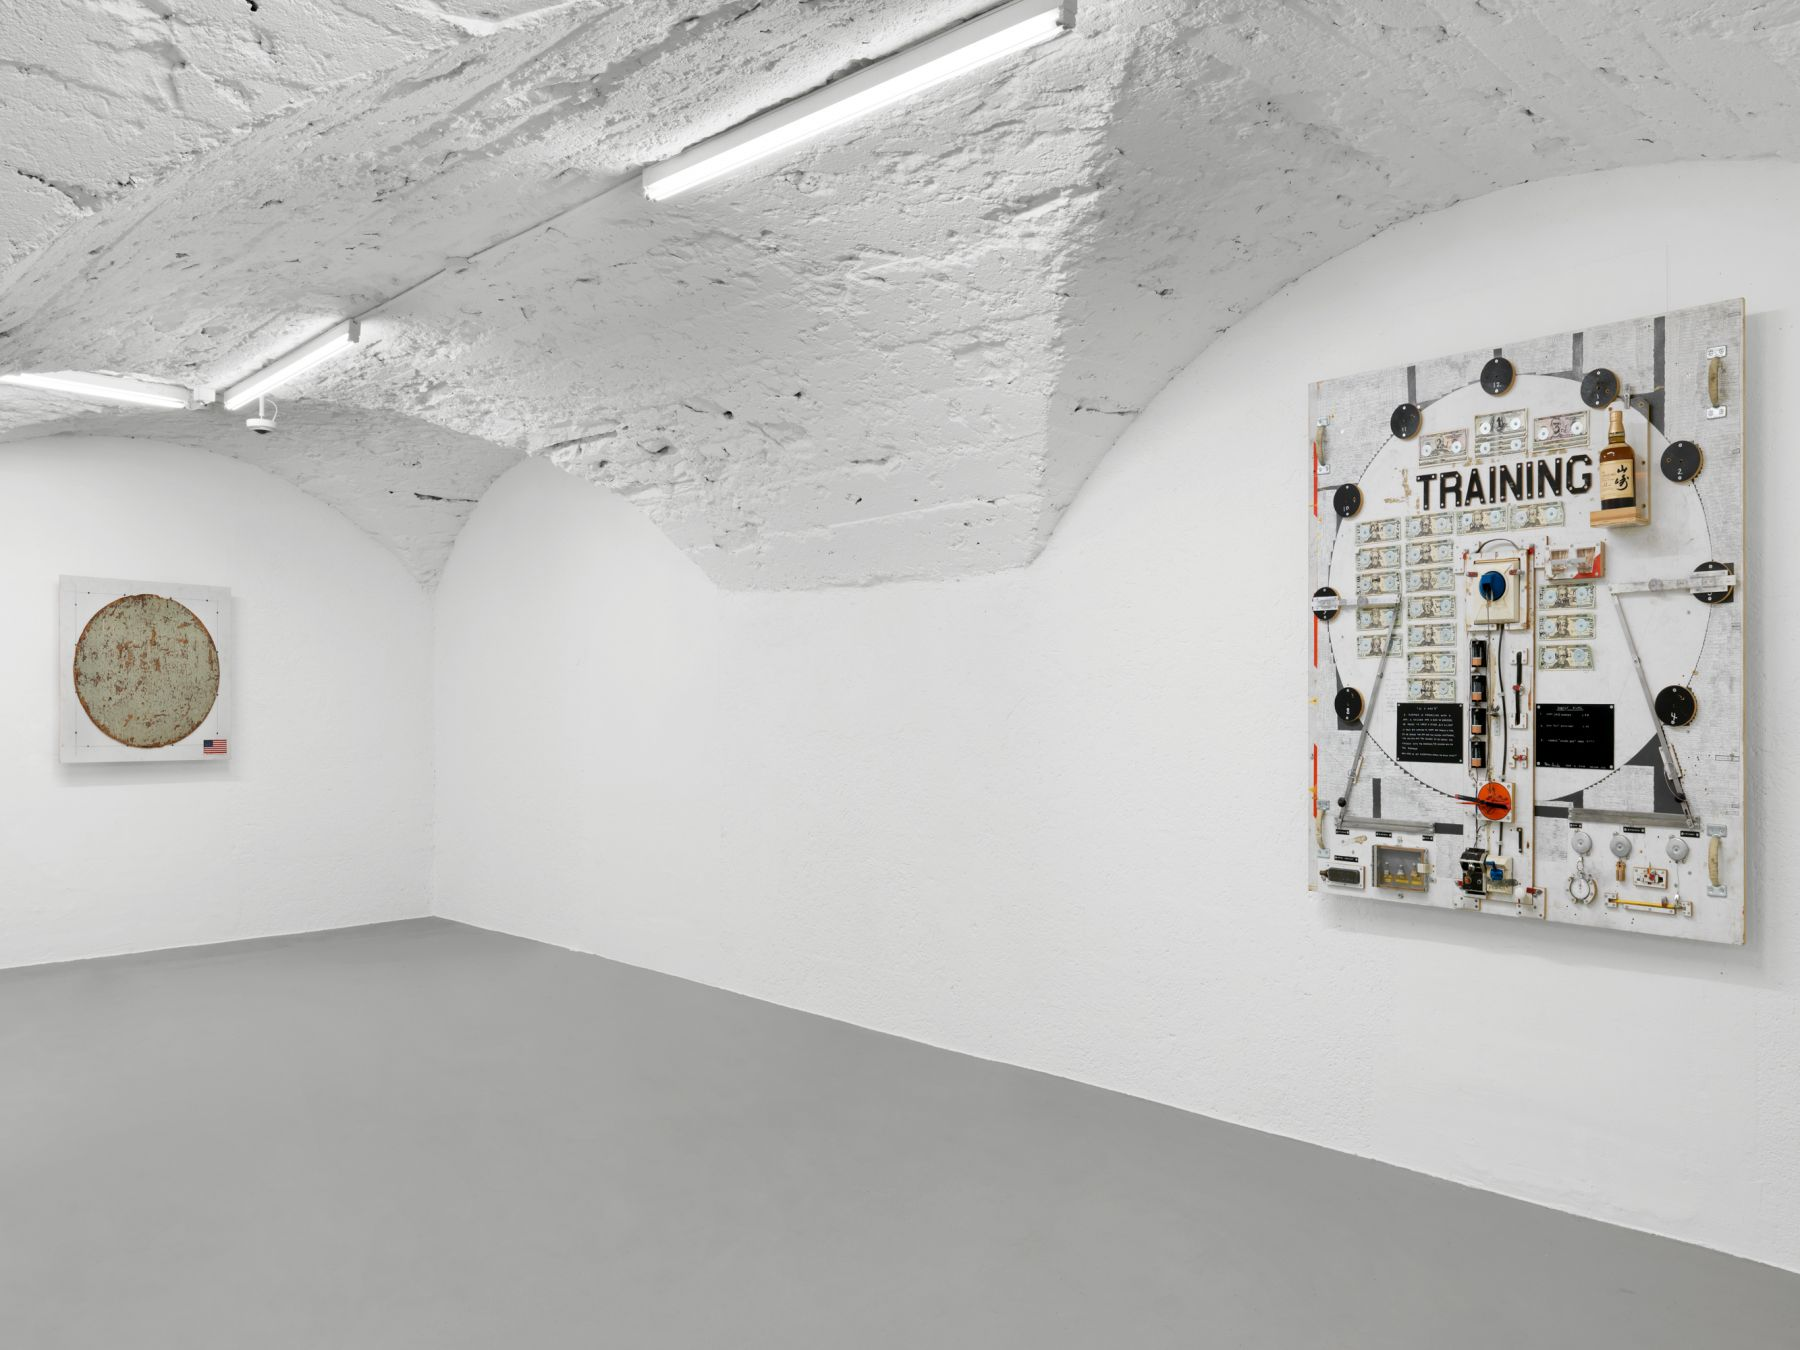 Installation view,Tom Sachs,The Pack,Vito Schnabel Gallery, St. Moritz, 2018-2019, © Tom Sachs; Photos by Stefan Altenburger; Courtesy Tom Sachs Studio and Vito Schnabel Gallery